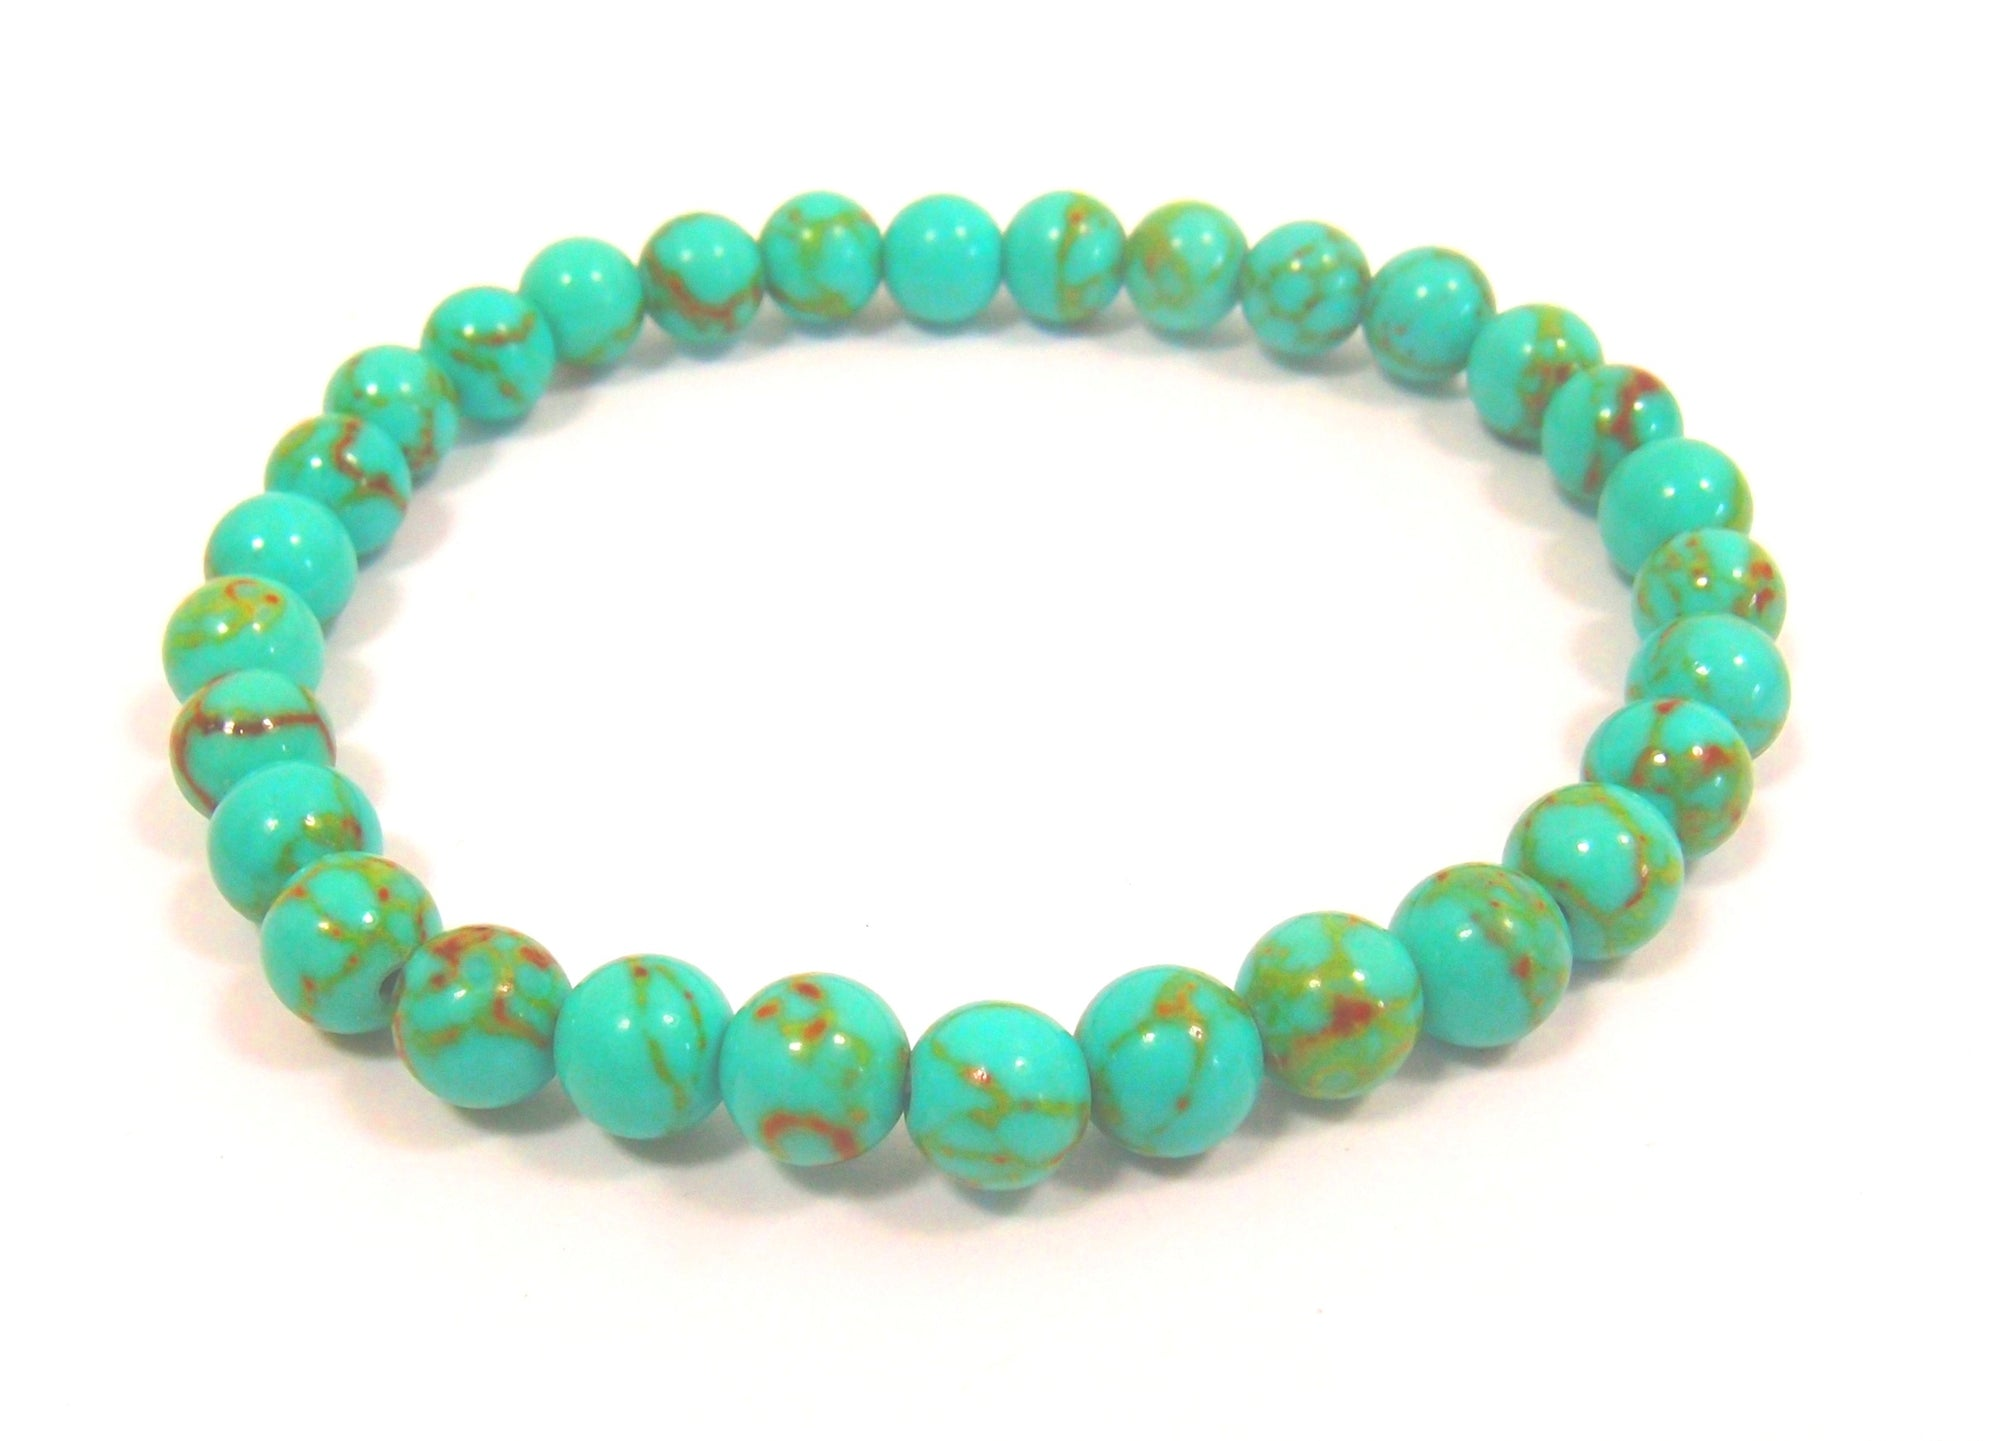 Turquoise Green Bracelet (6mm beads): Pietra